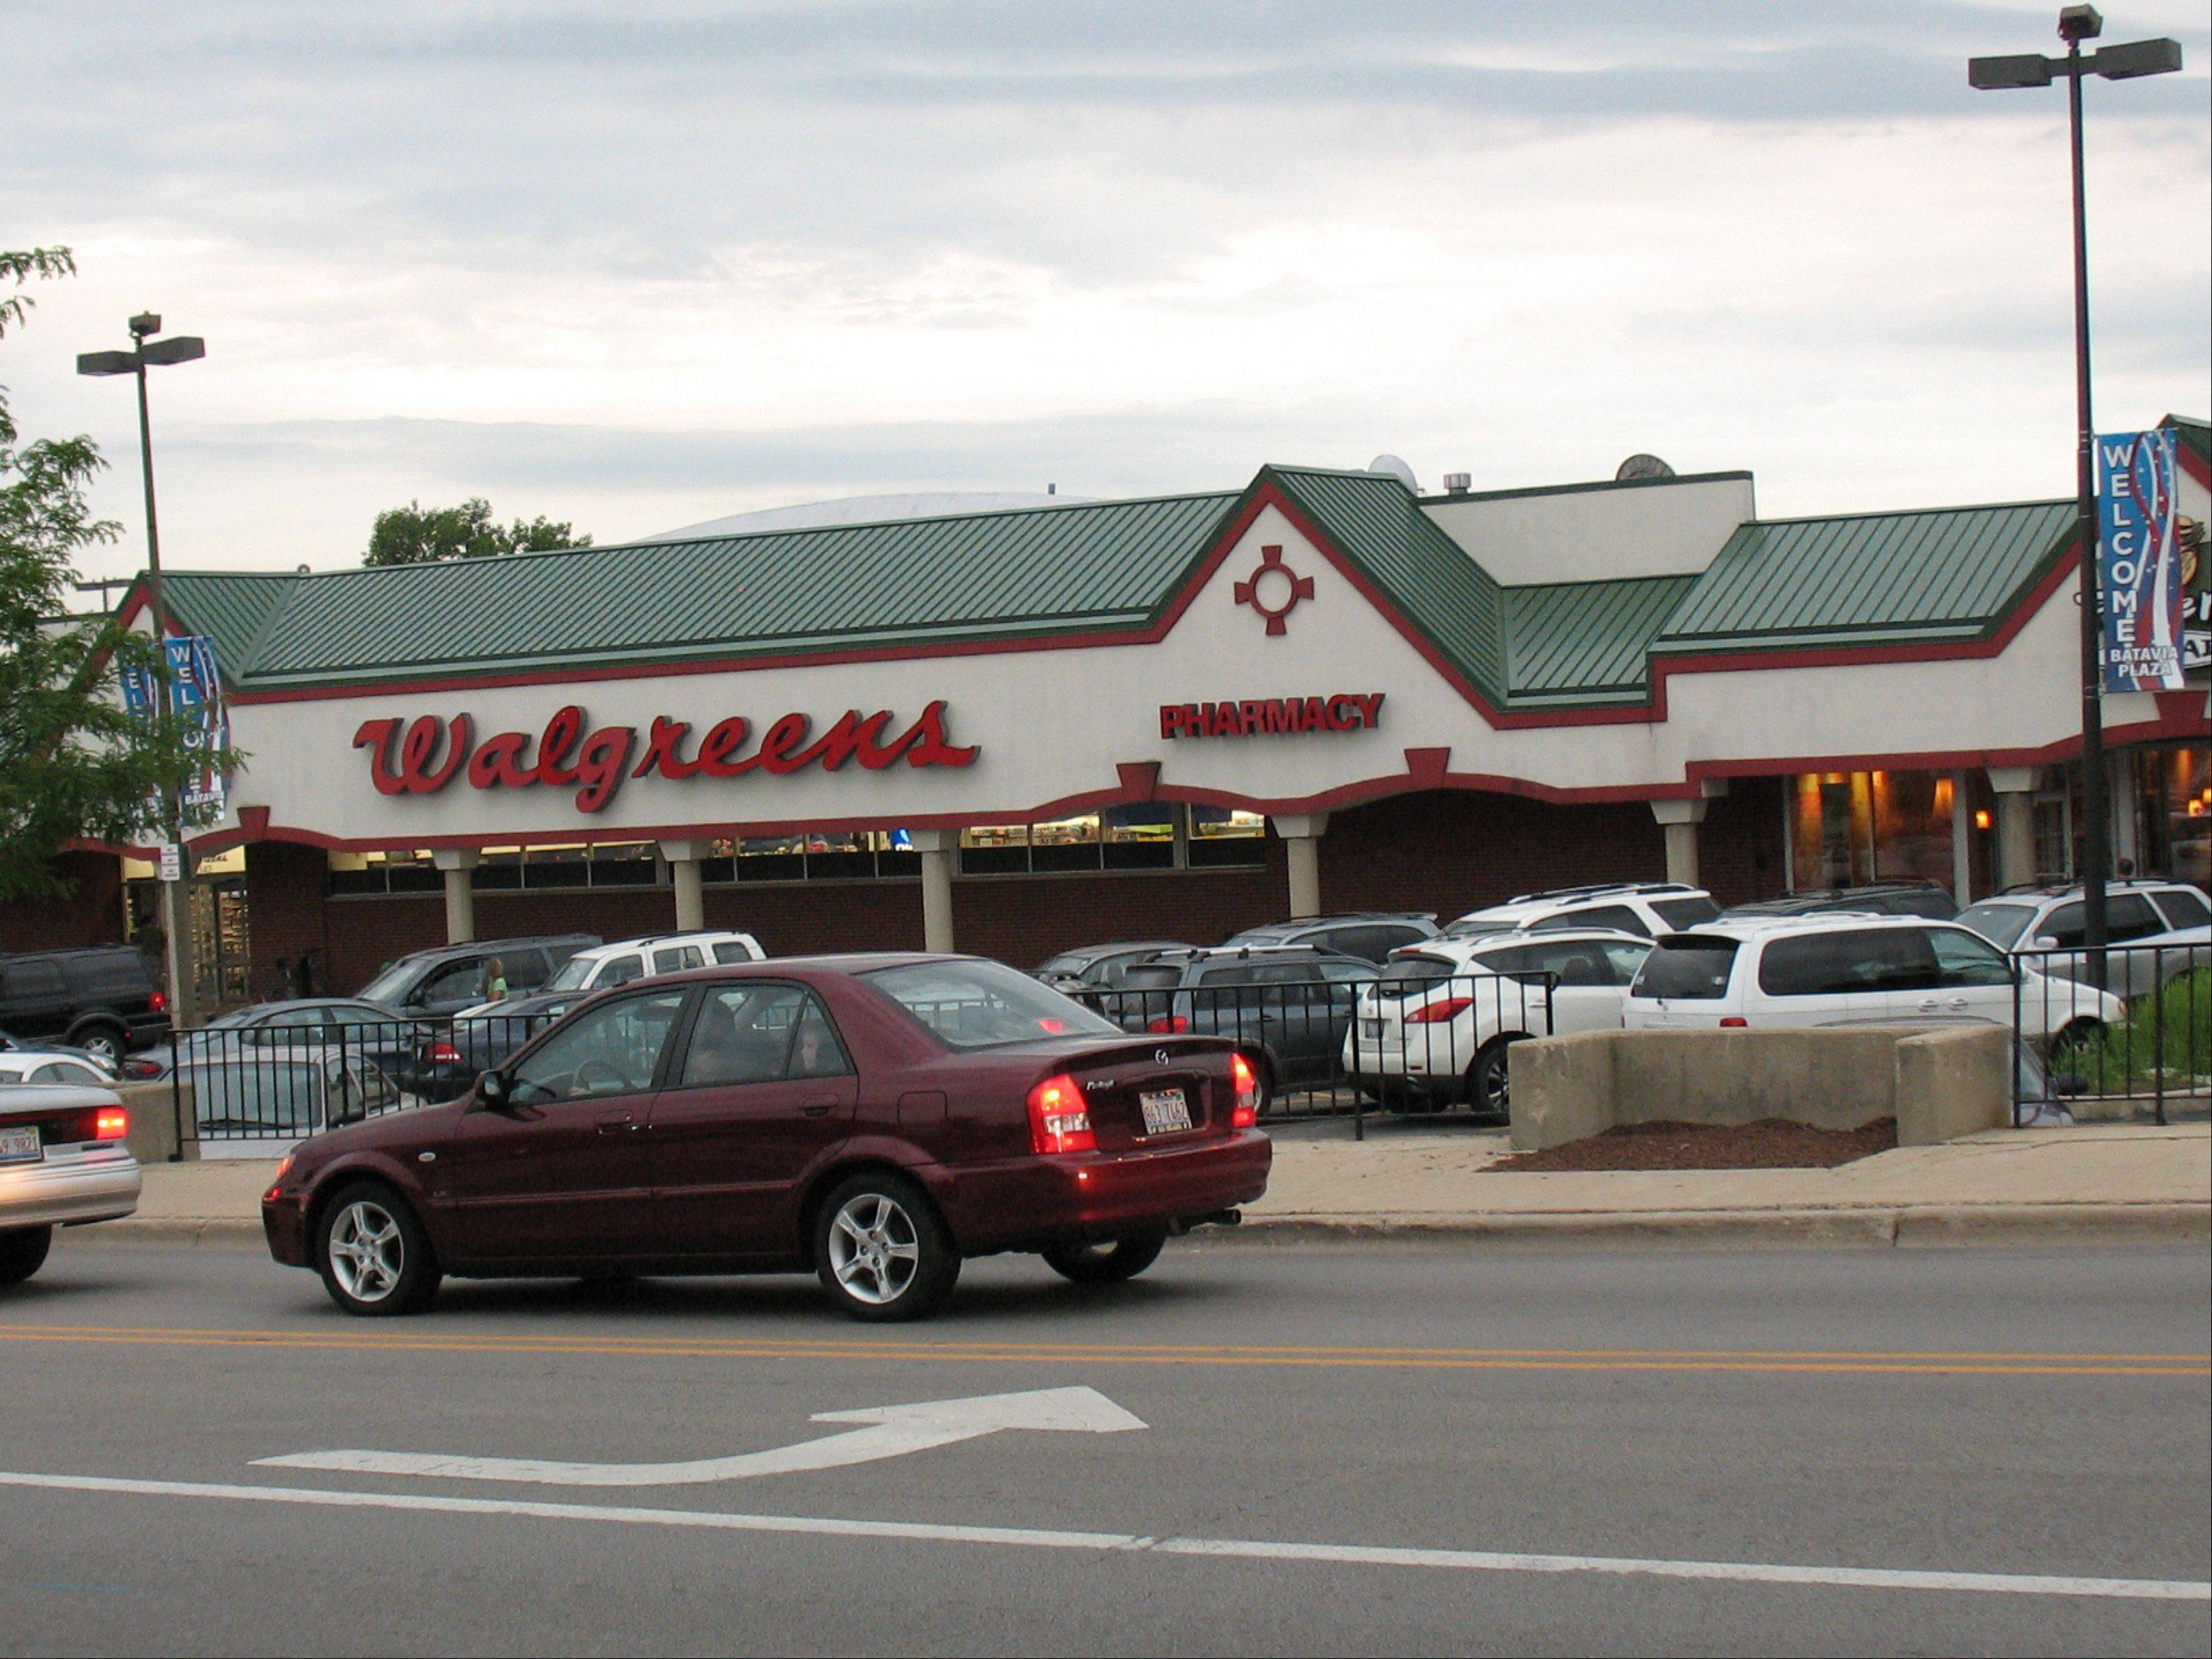 Walgreens wants larger downtown Batavia store